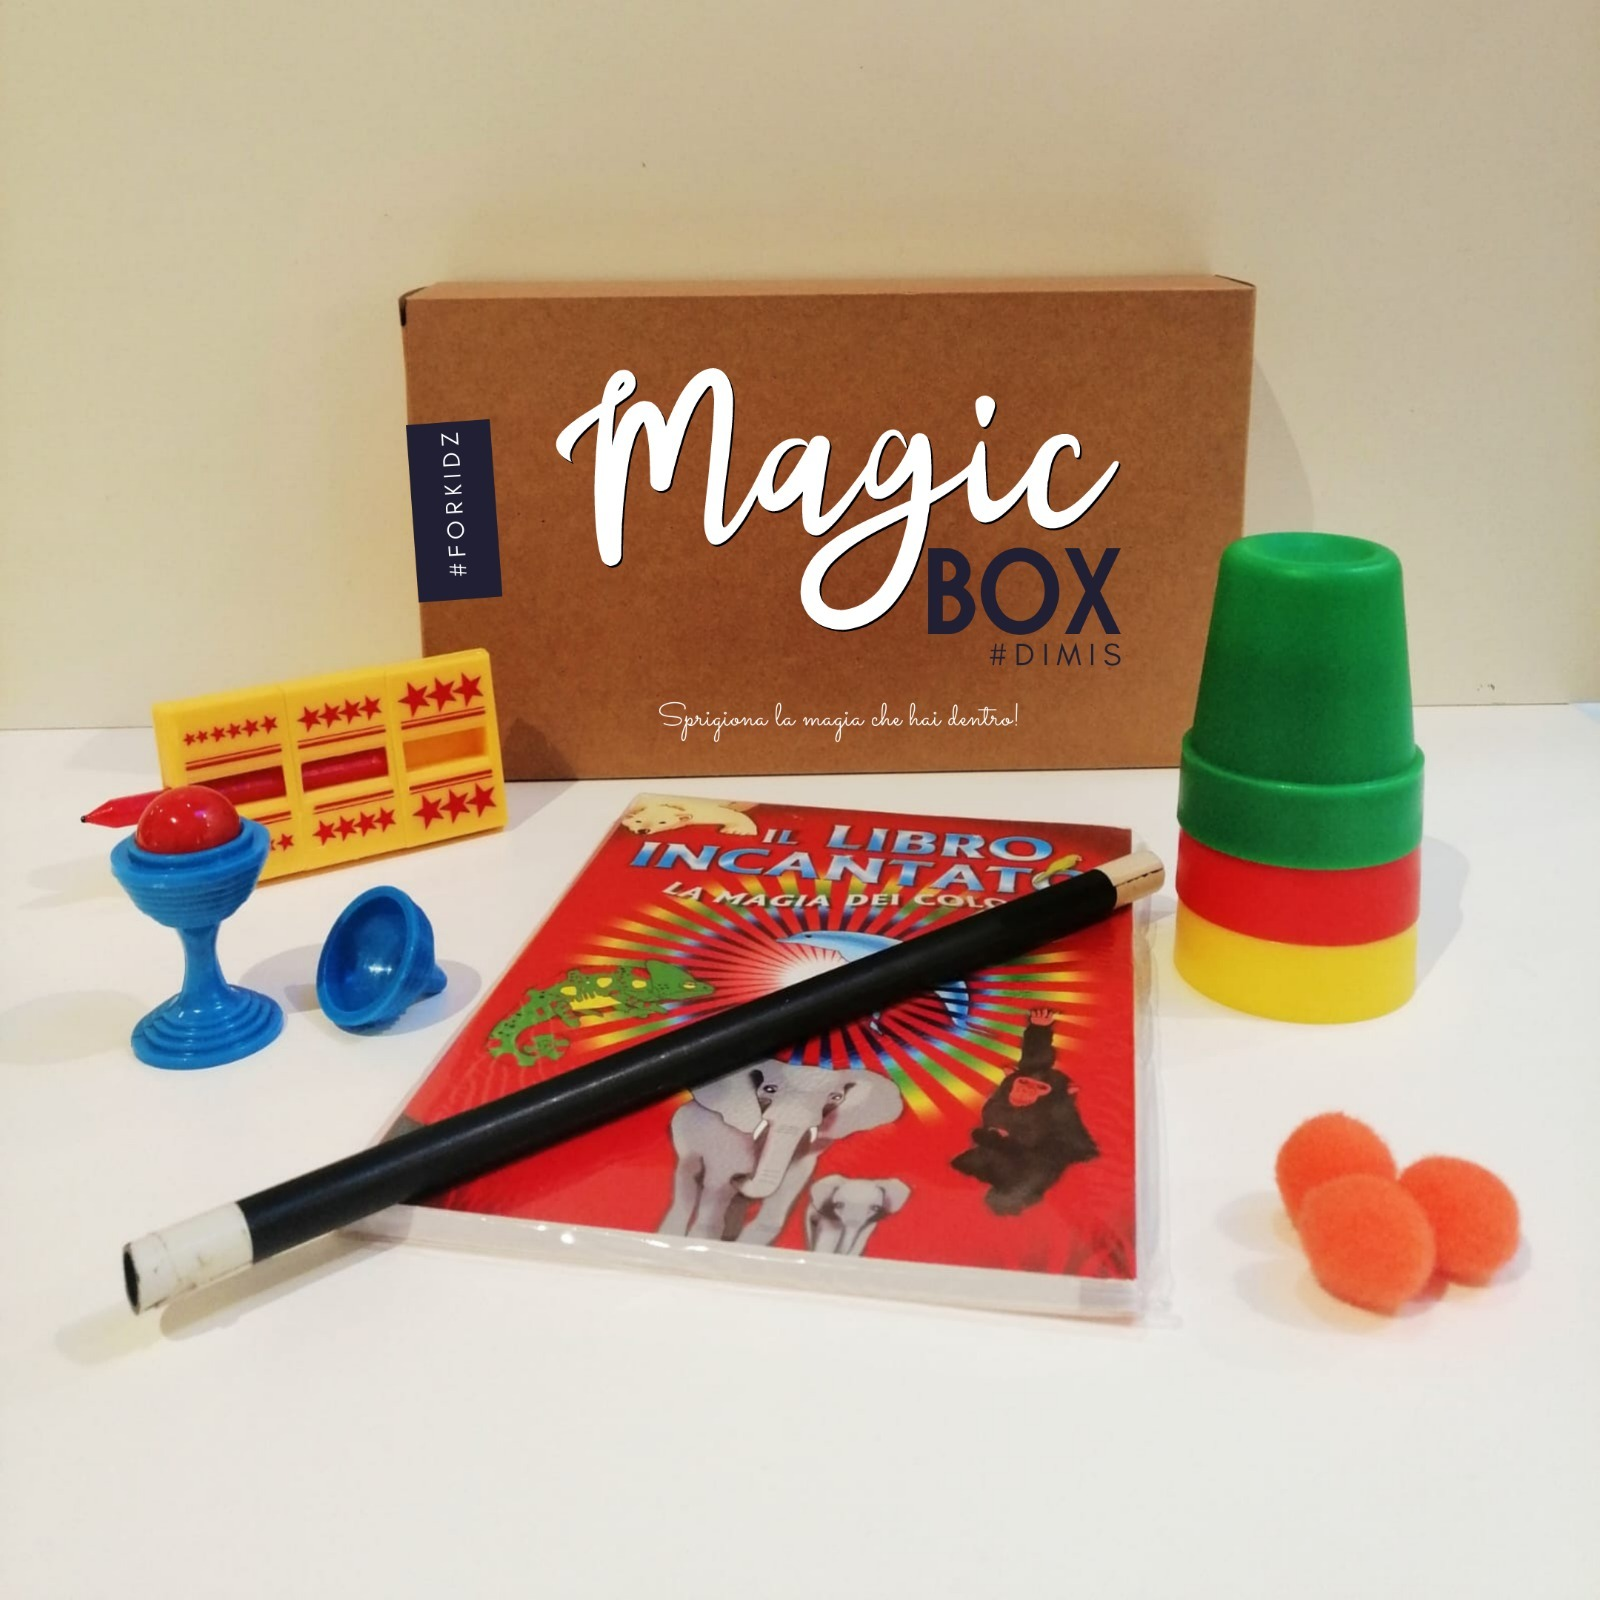 Per Natale regala la Magic Box del Mago Dimis!